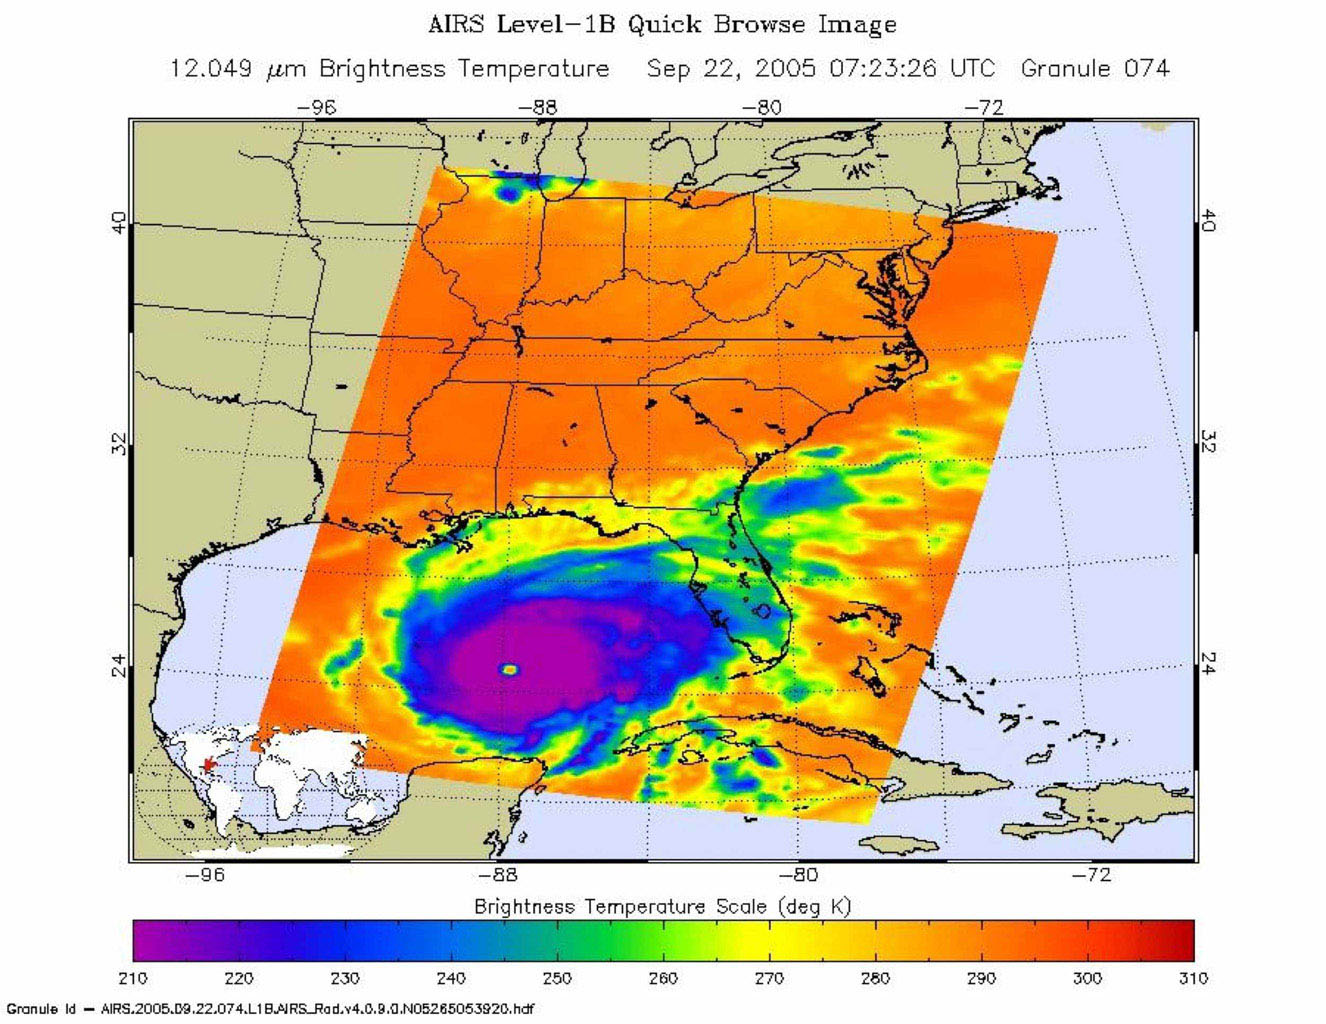 In September, 2005, Rita was a category 5 hurricane with sustained winds of 150 mph and a central pressure of 897 millibar when positioned approximately 470 southeast of Galveston, Texas.